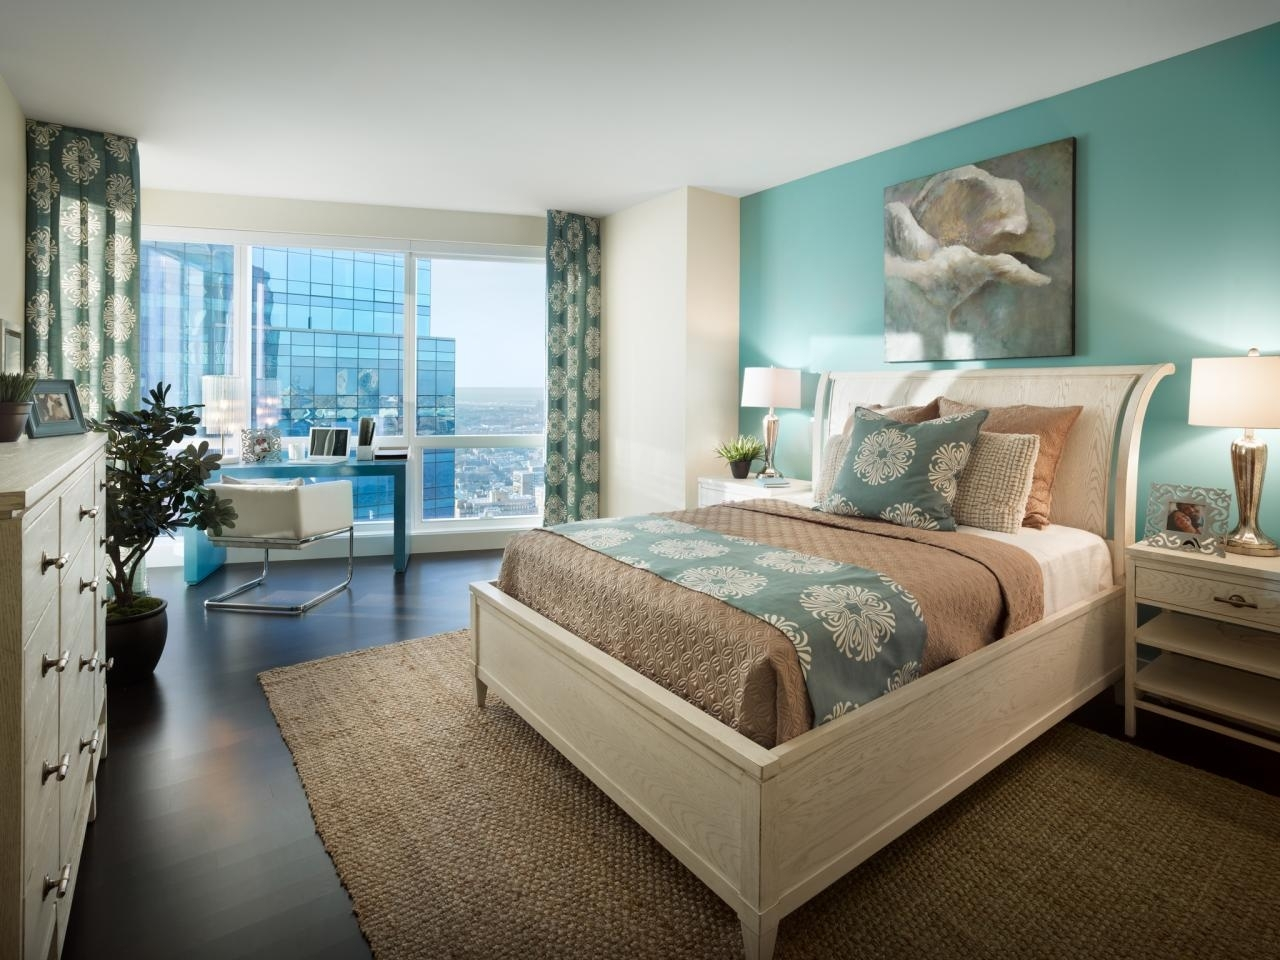 Bedroom | Coastal Accent Use Aquamarine Wall Accent – Contrast Way For Most Recently Released Wall Accents Behind Bed (View 14 of 15)